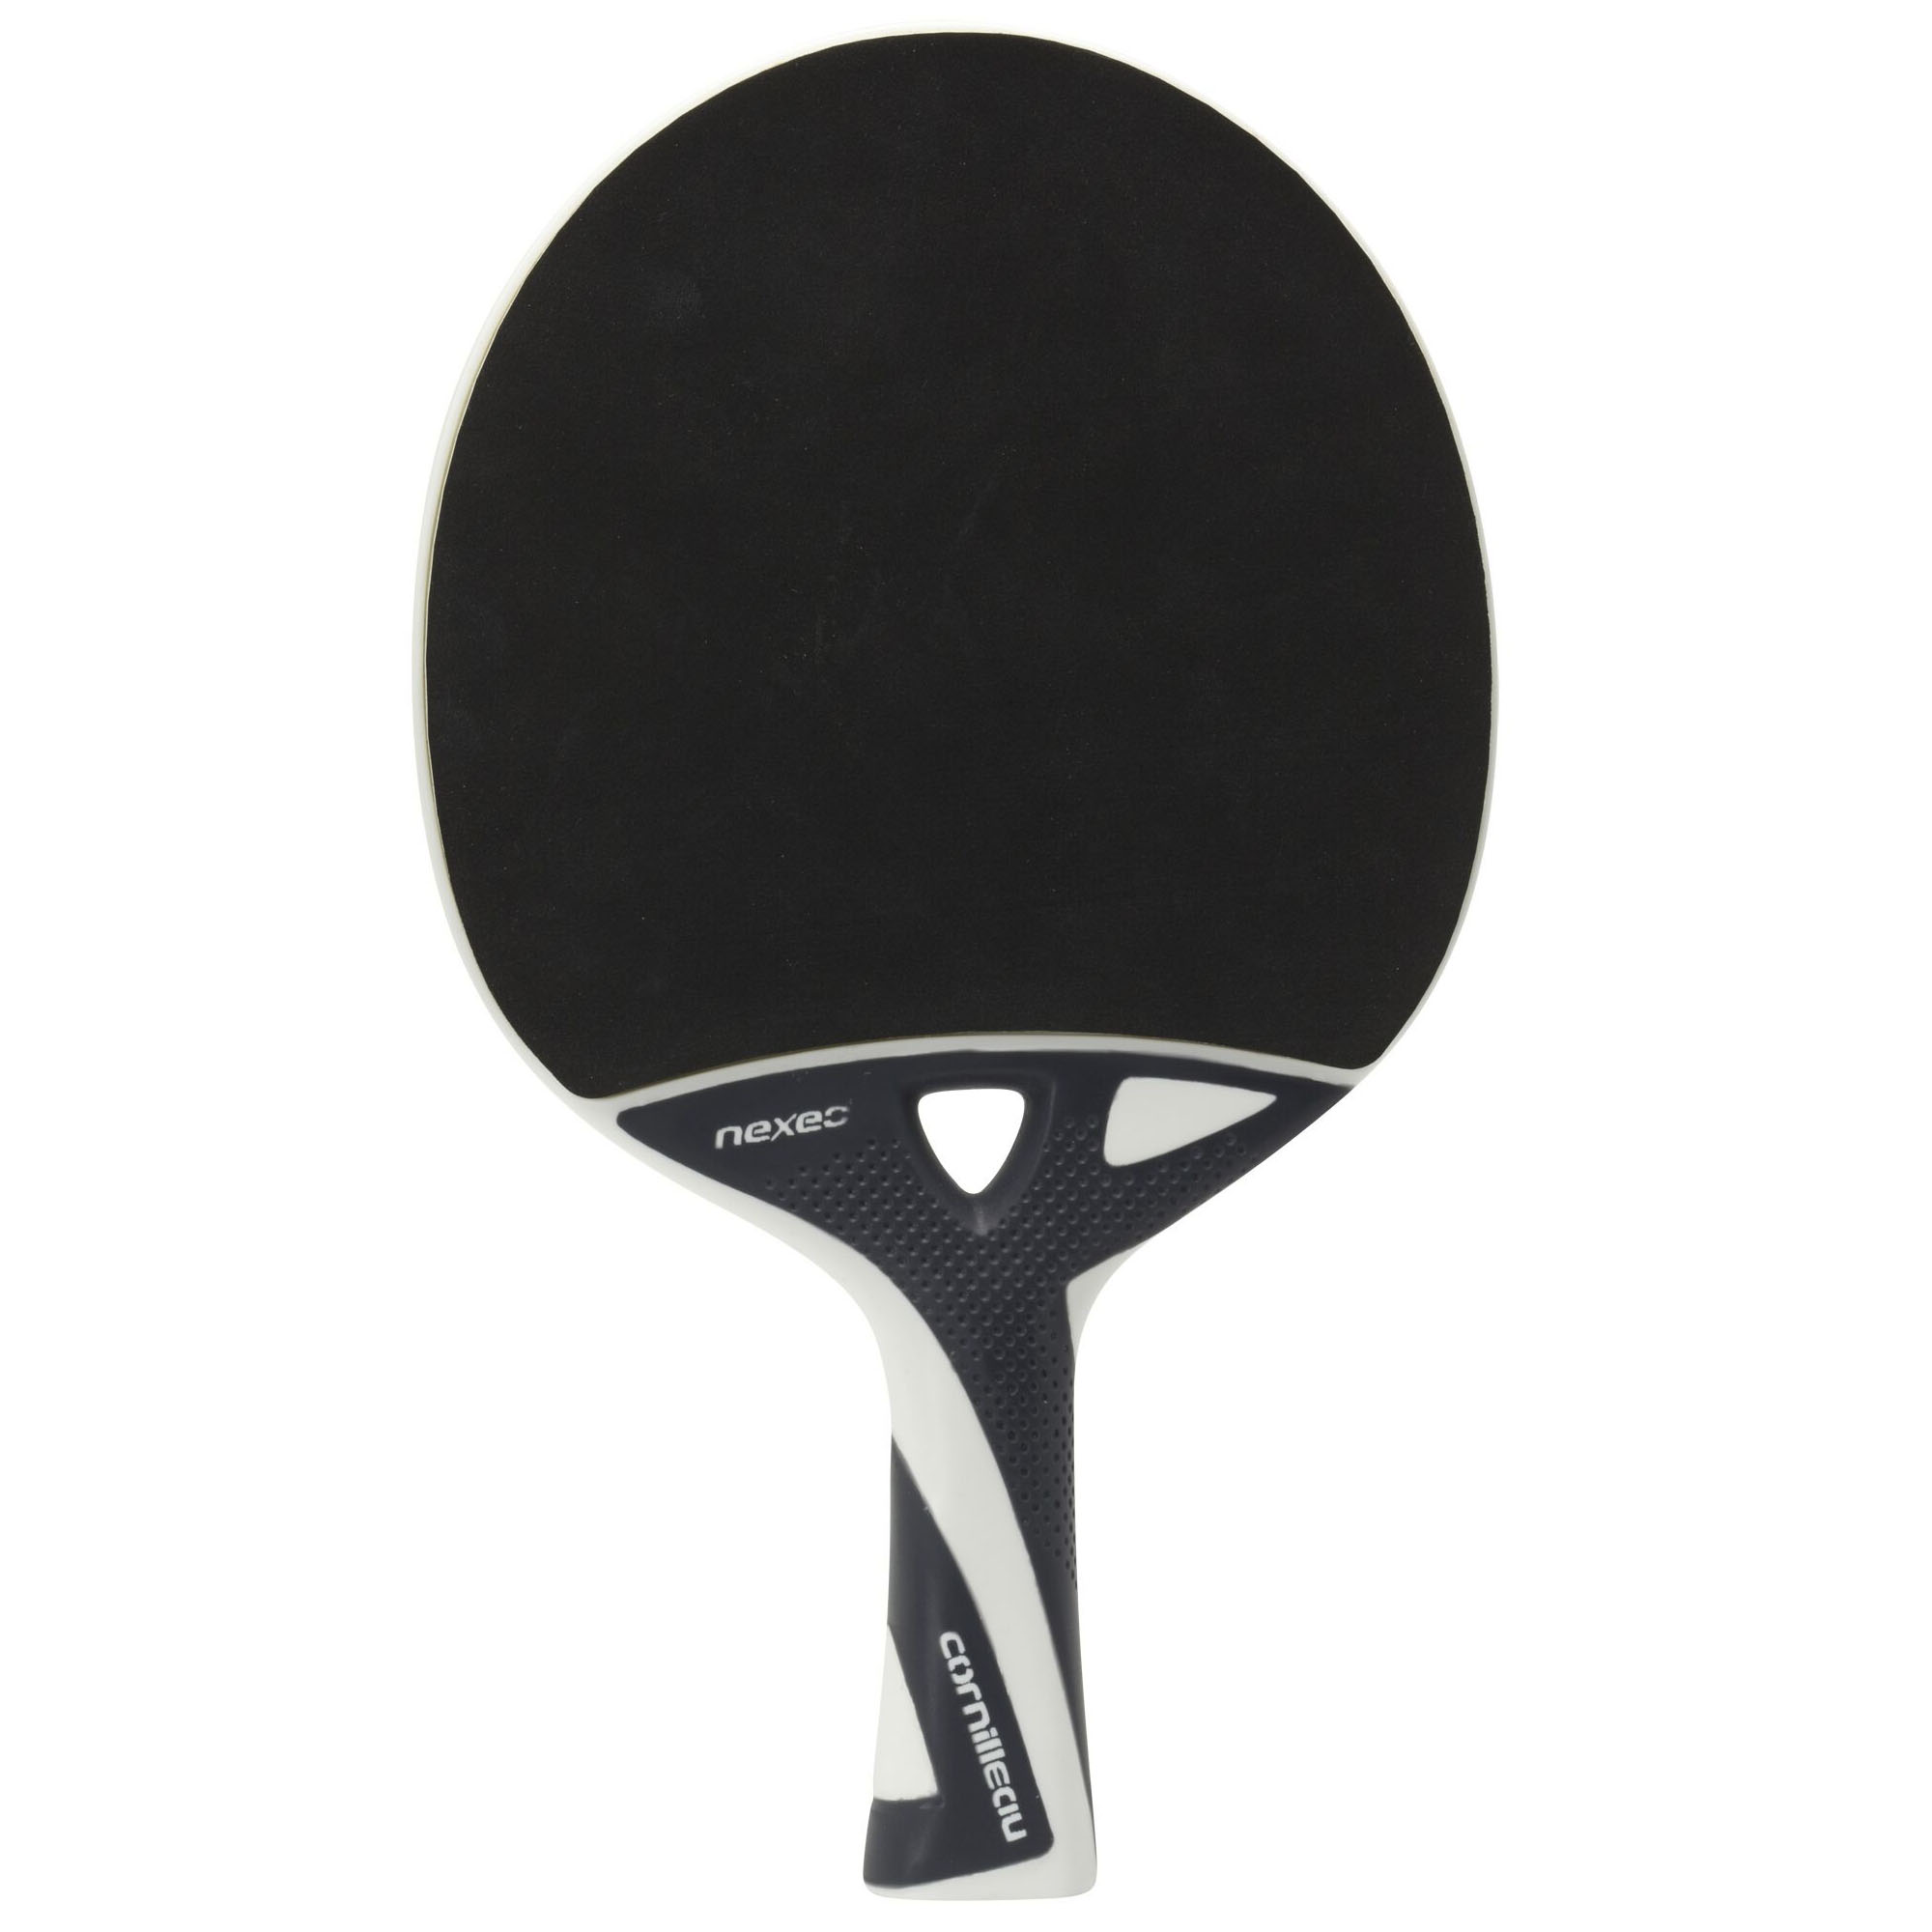 Image of Cornilleau Nexeo X70 Table Tennis Bat